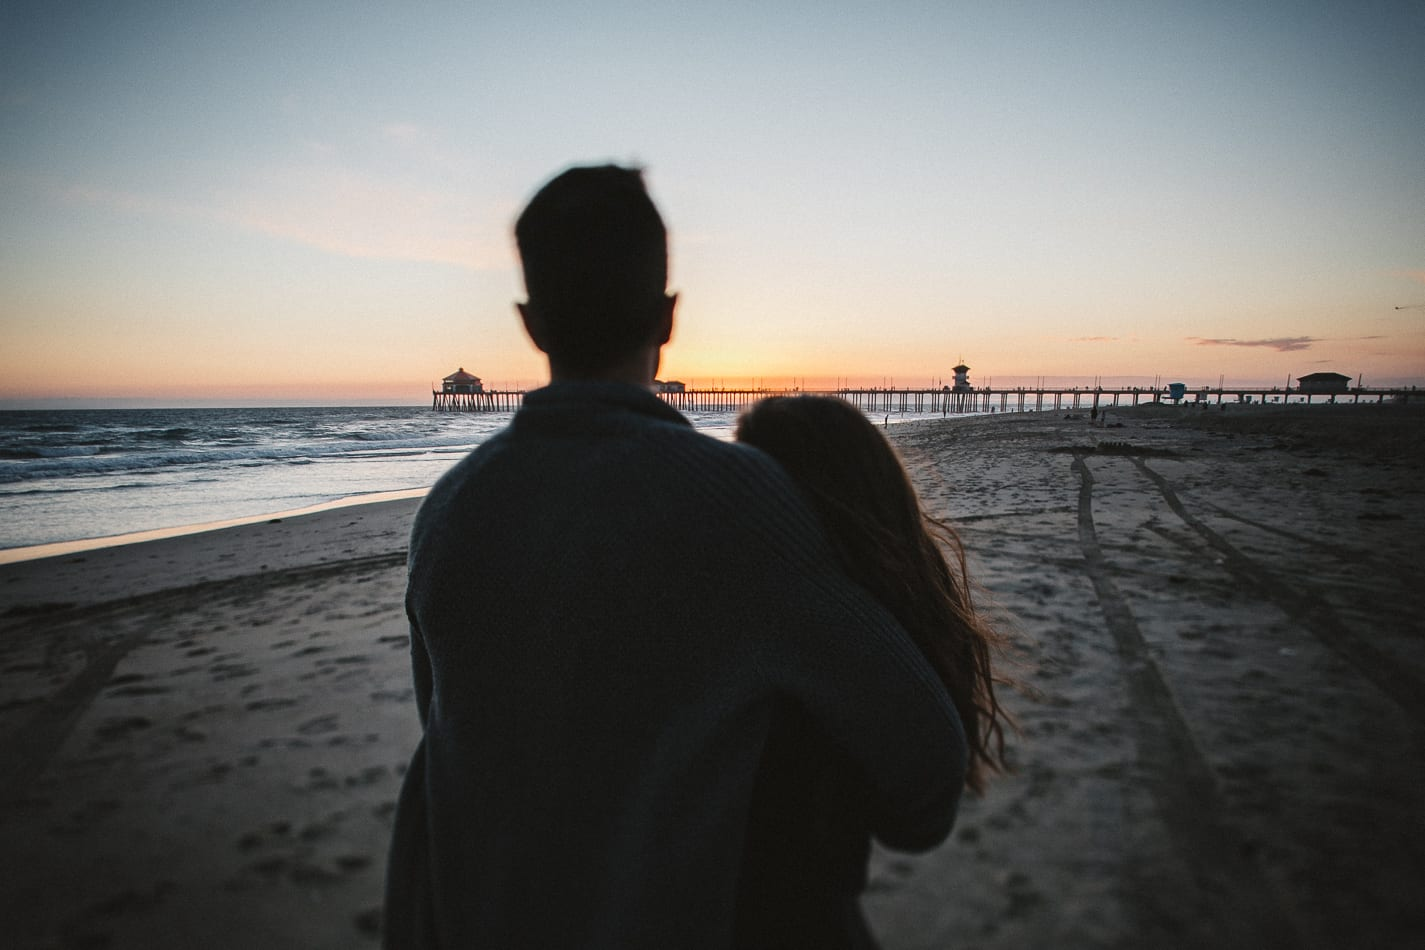 jason-alyssa-huntington-beach-california-engagement-photographer-31